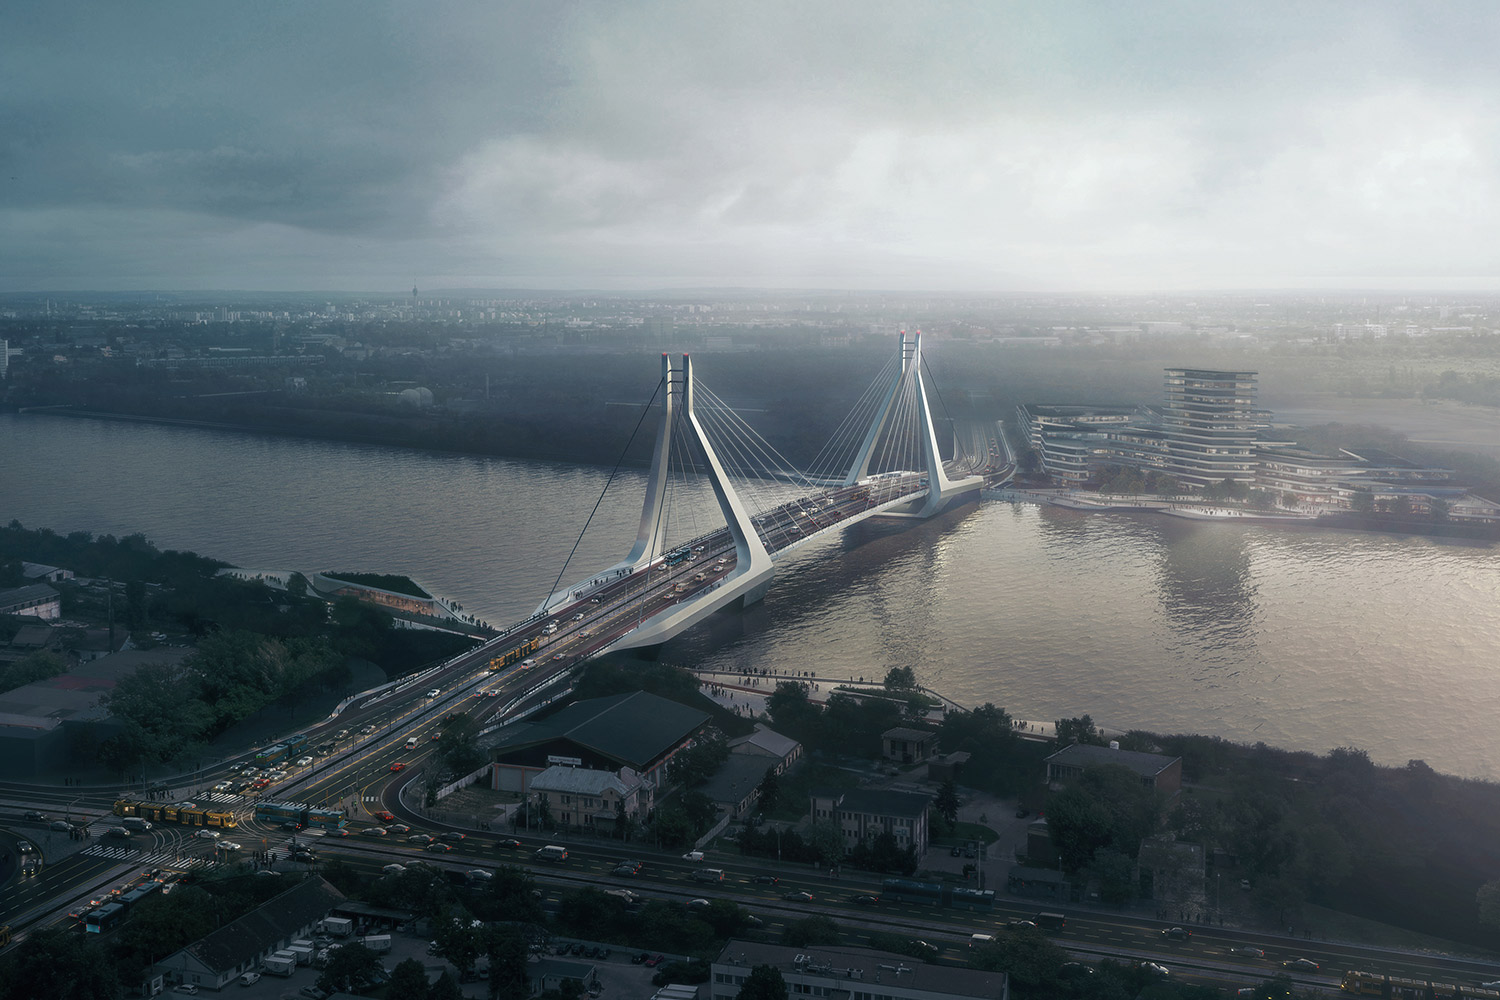 Aerial view of New Danube Bridge from the side, pictured against a moody grey sky